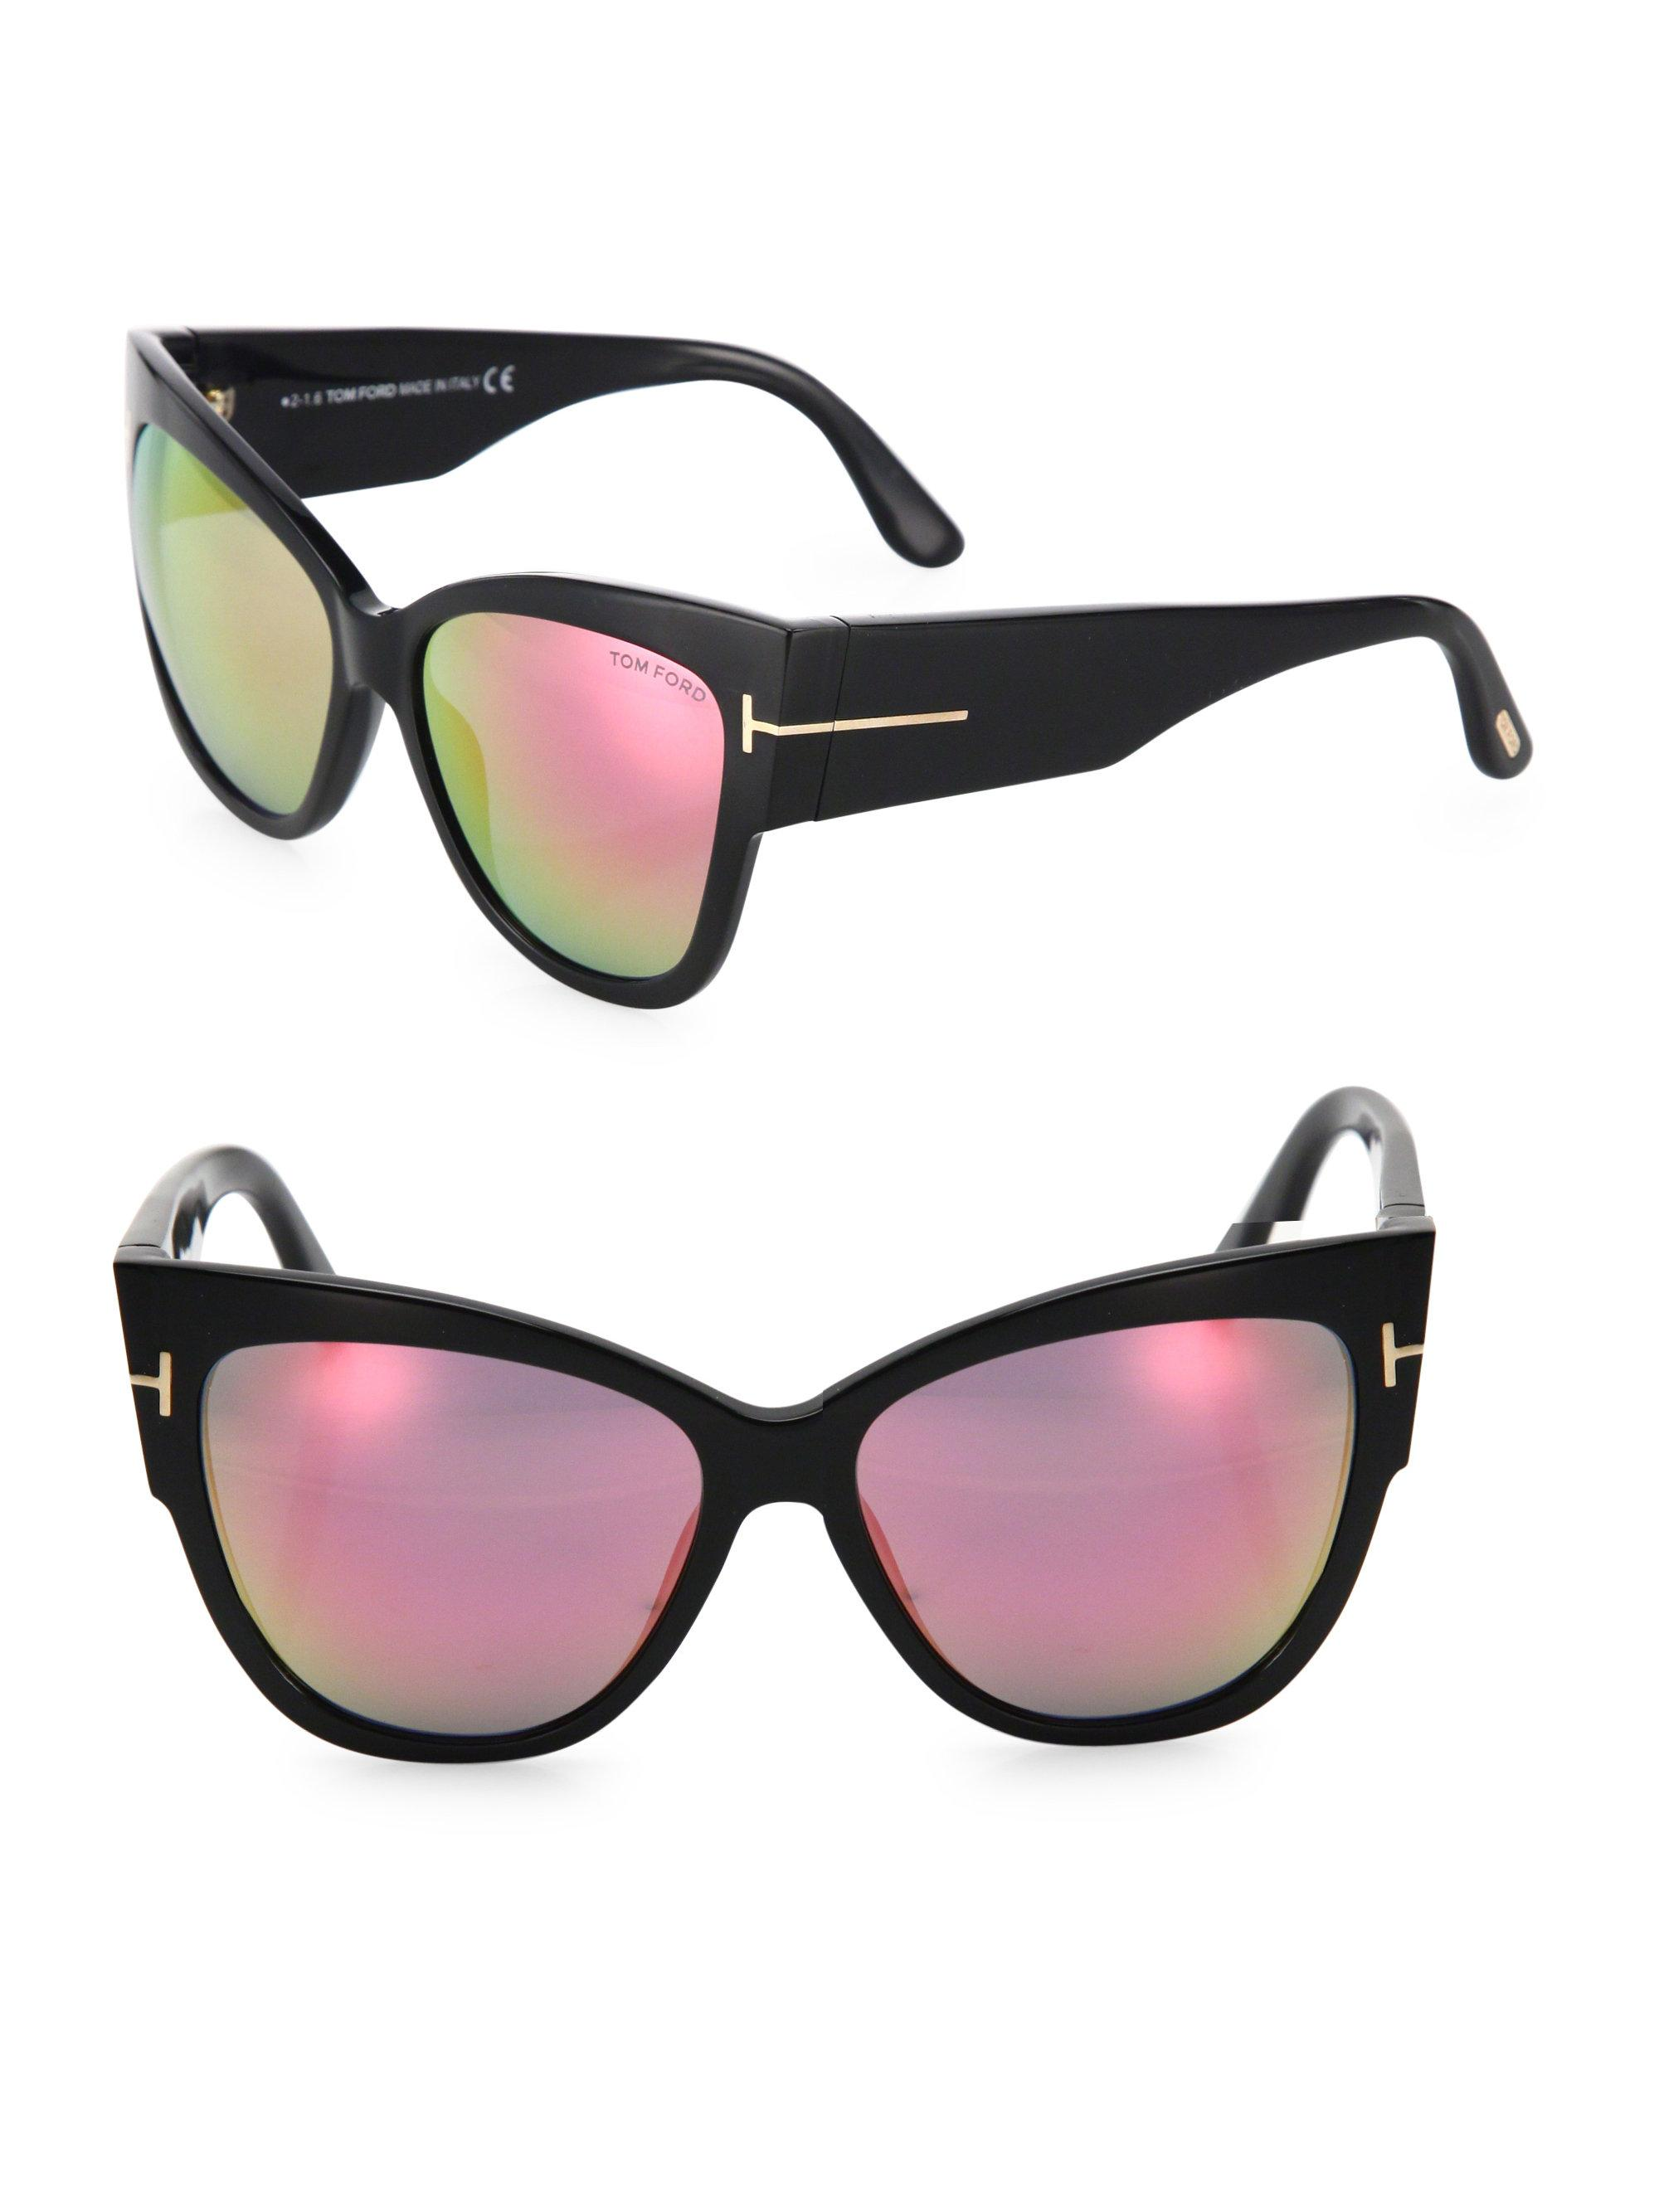 164004ce3e1a Lyst - Tom Ford Anoushka 57mm Mirrored Cat Eye Sunglasses